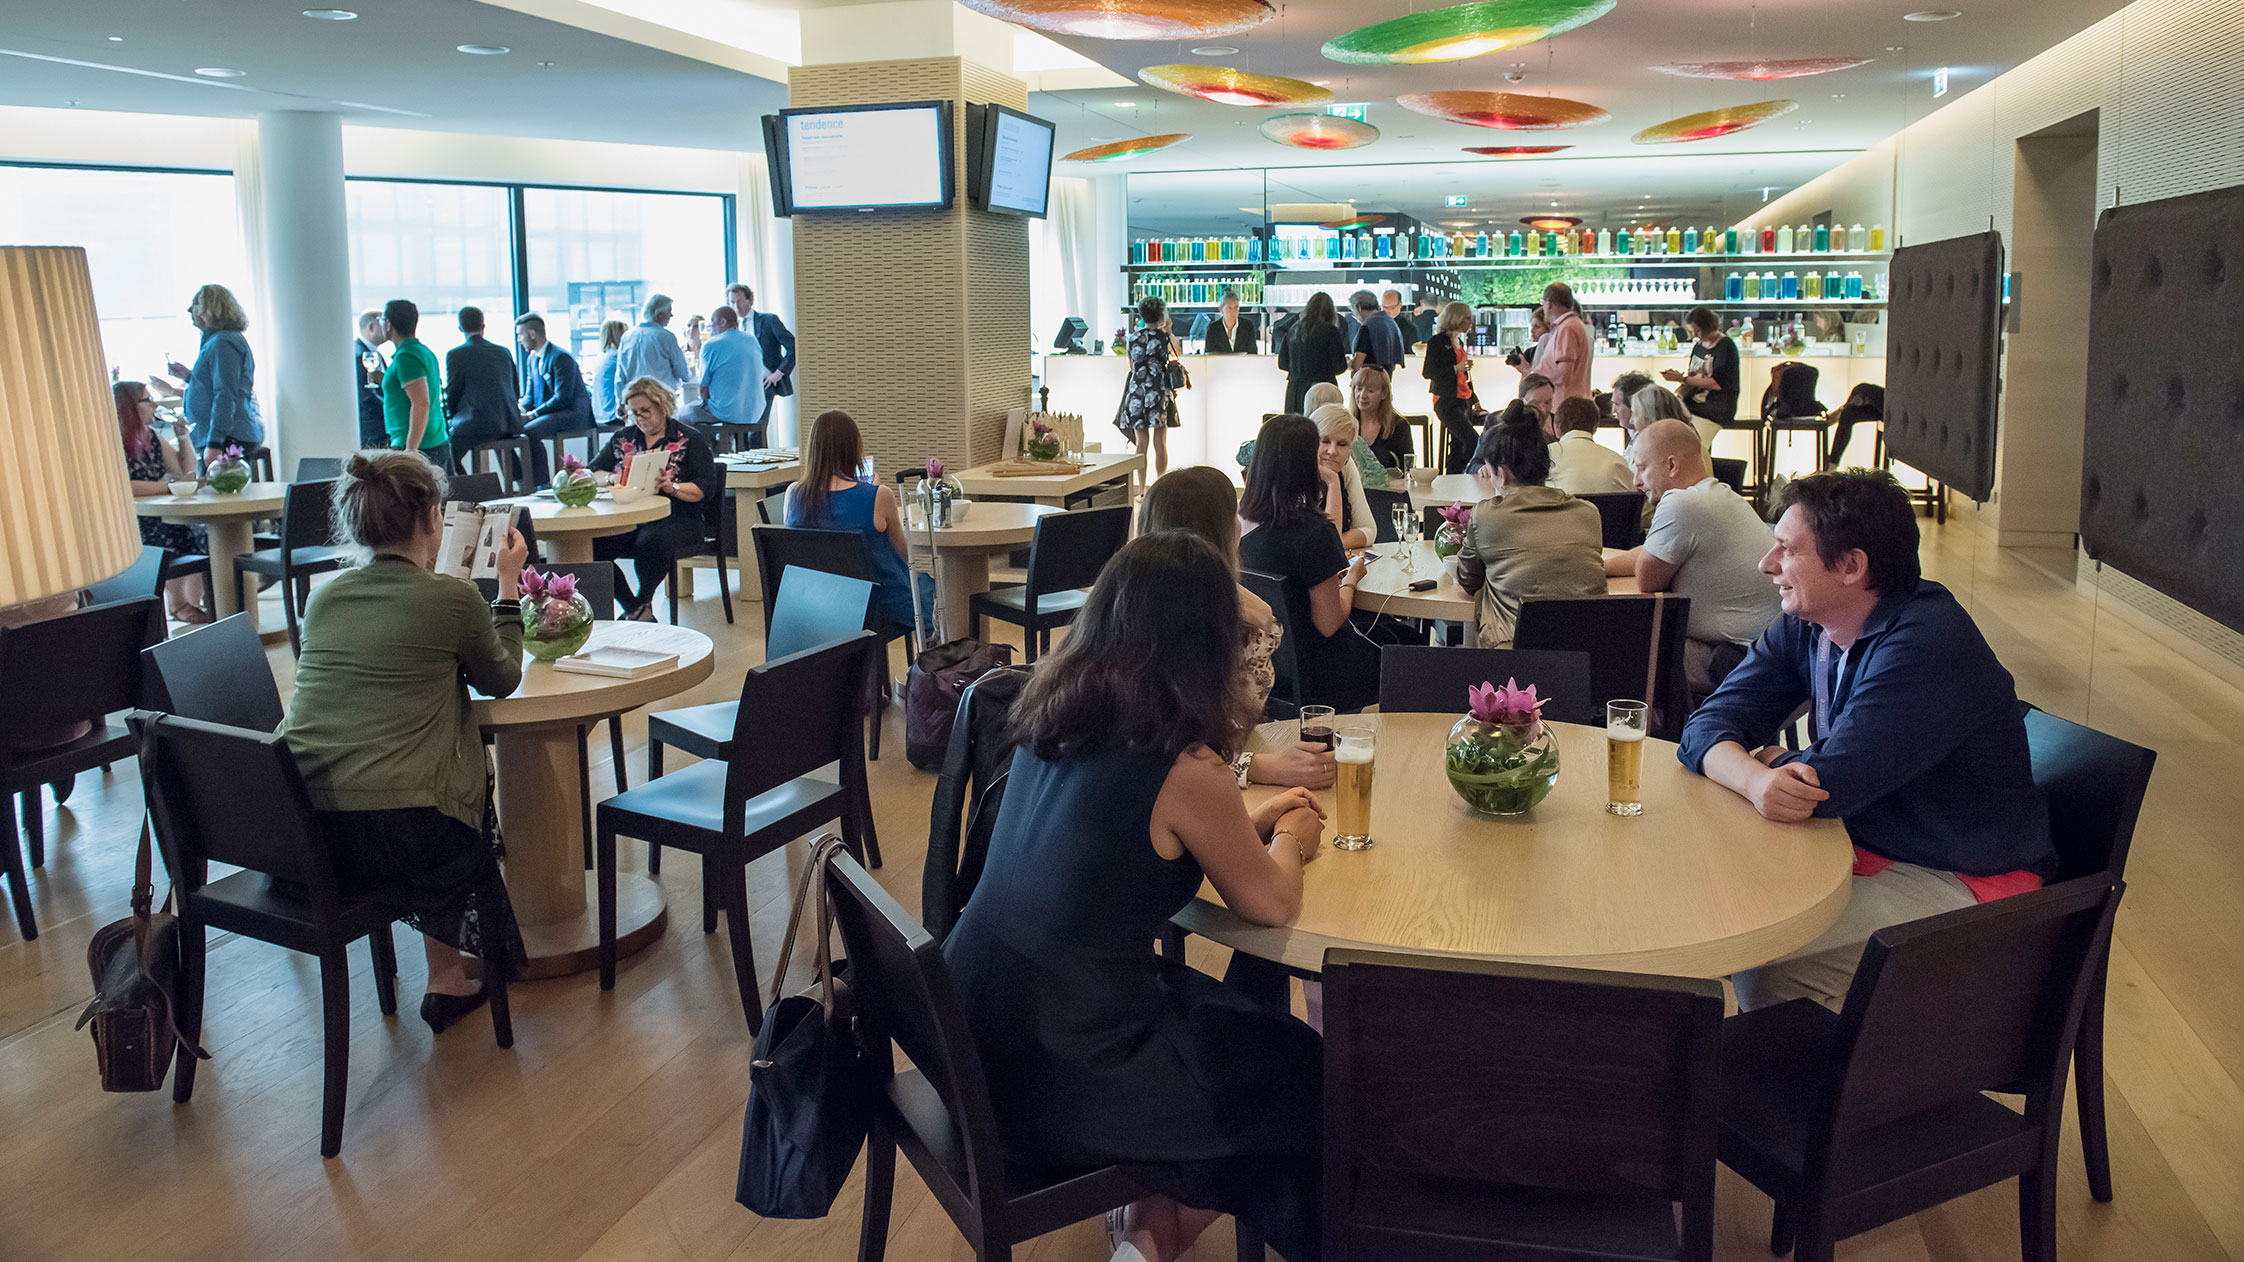 Press Center Restaurant